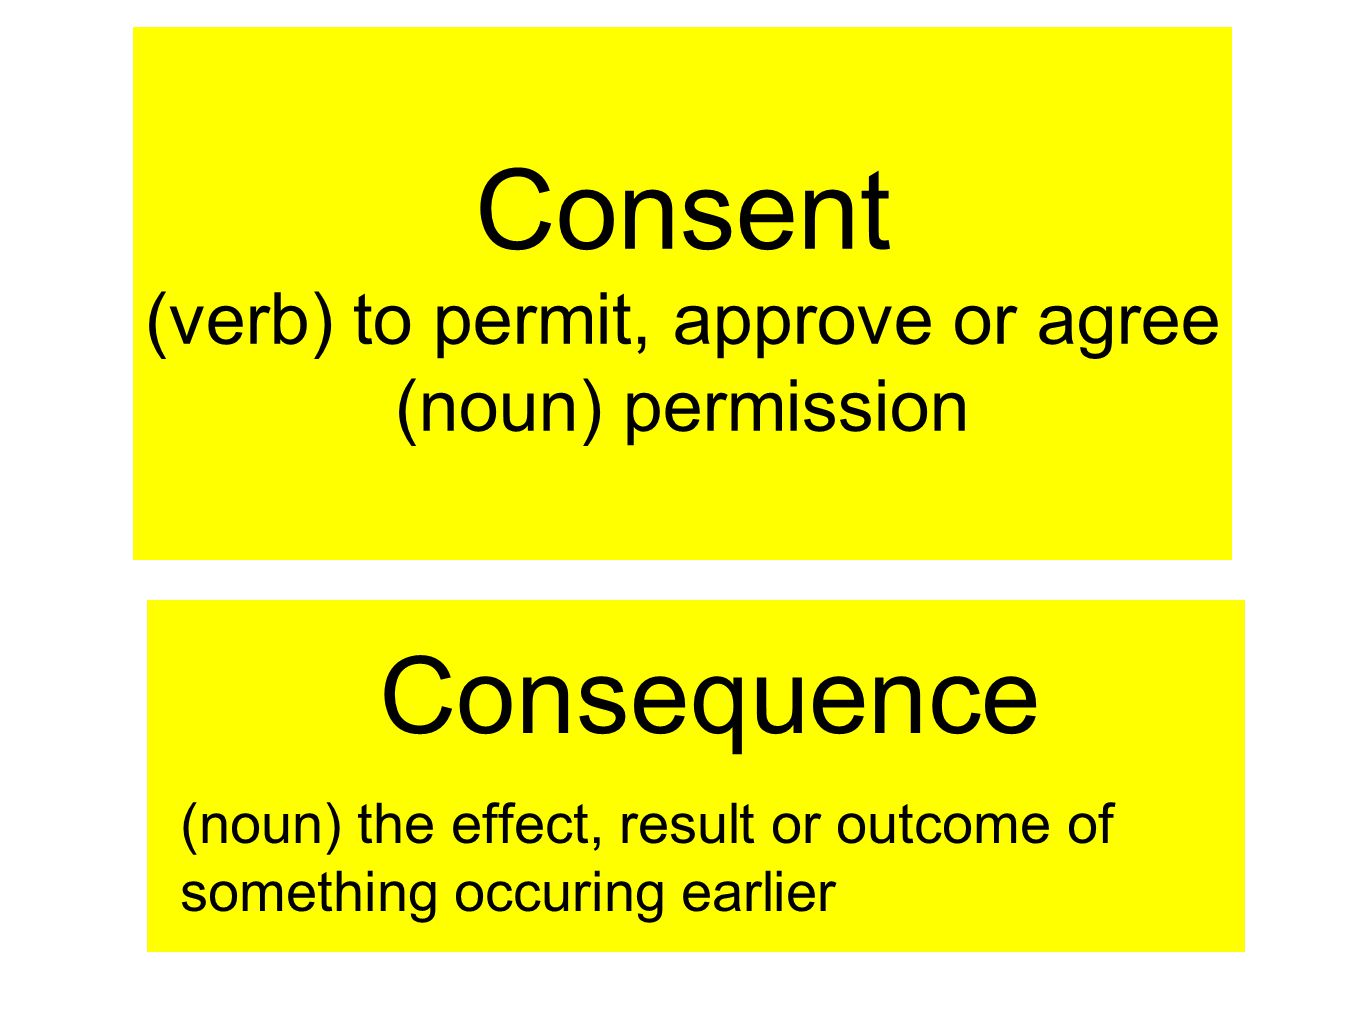 Consent (verb) to permit, approve or agree (noun) permission Consequence (noun) the effect, result or outcome of something occuring earlier